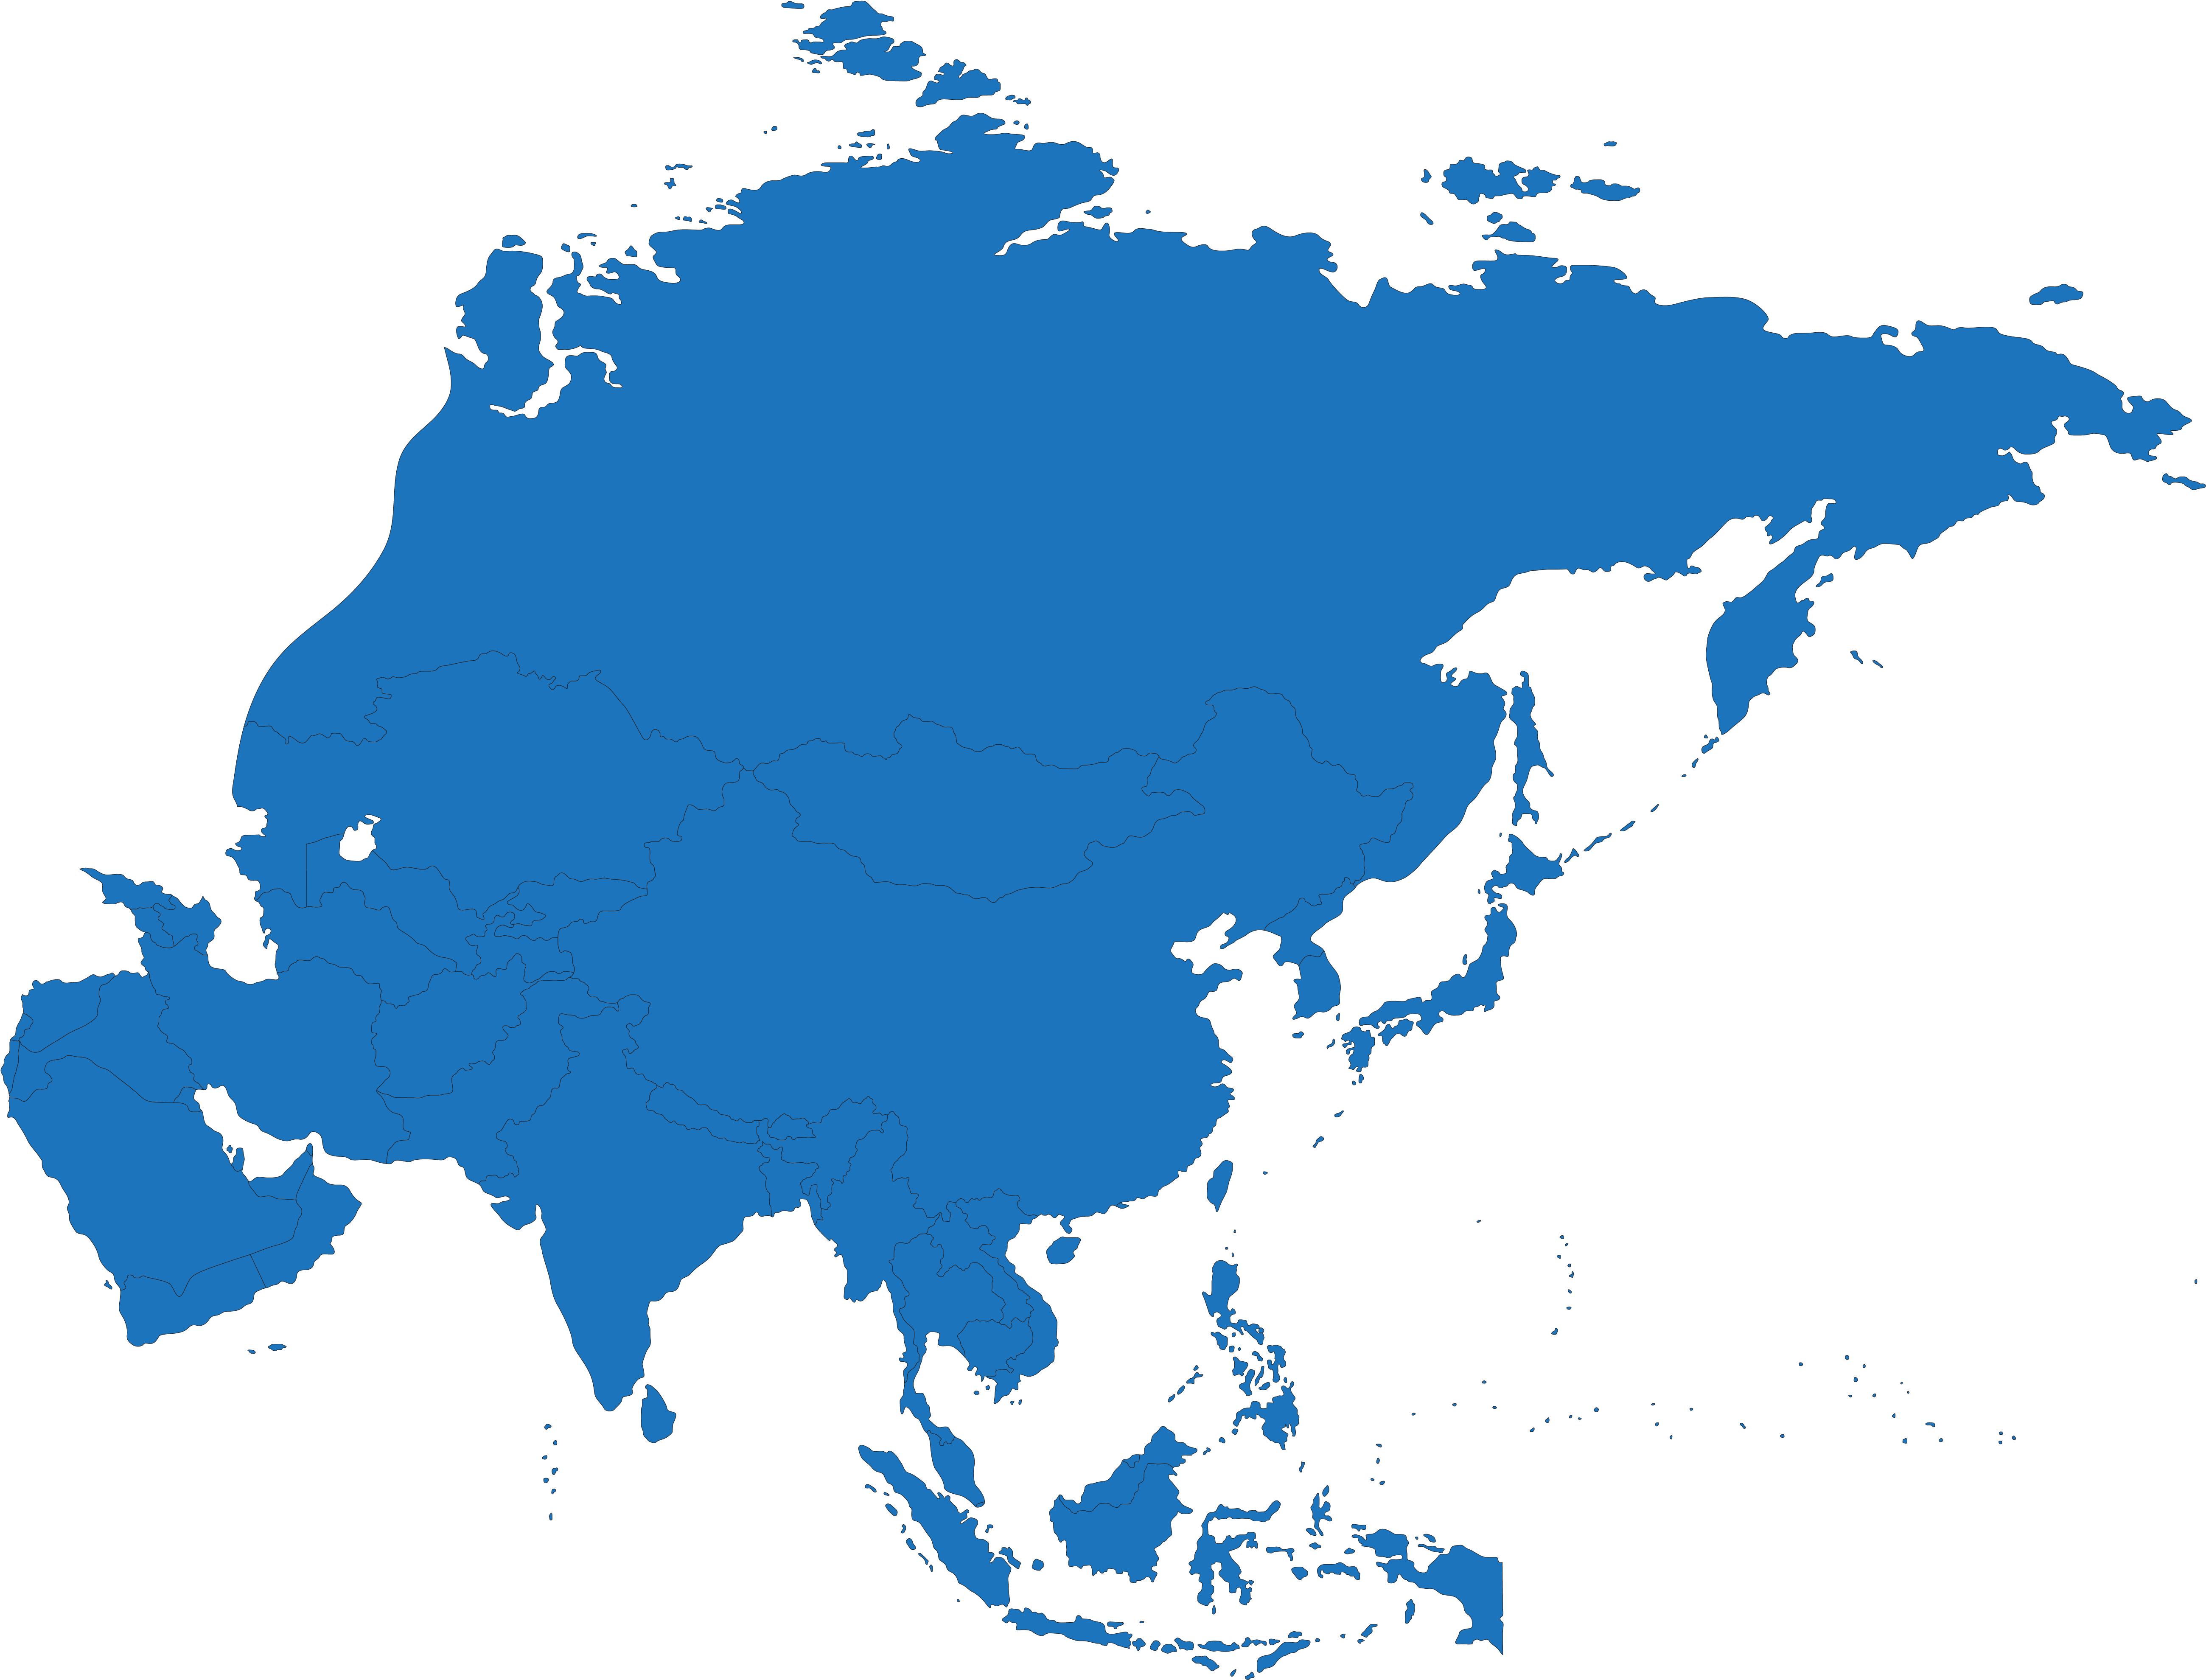 Map Of Asia And Pacific.Map Of Asia Pacific